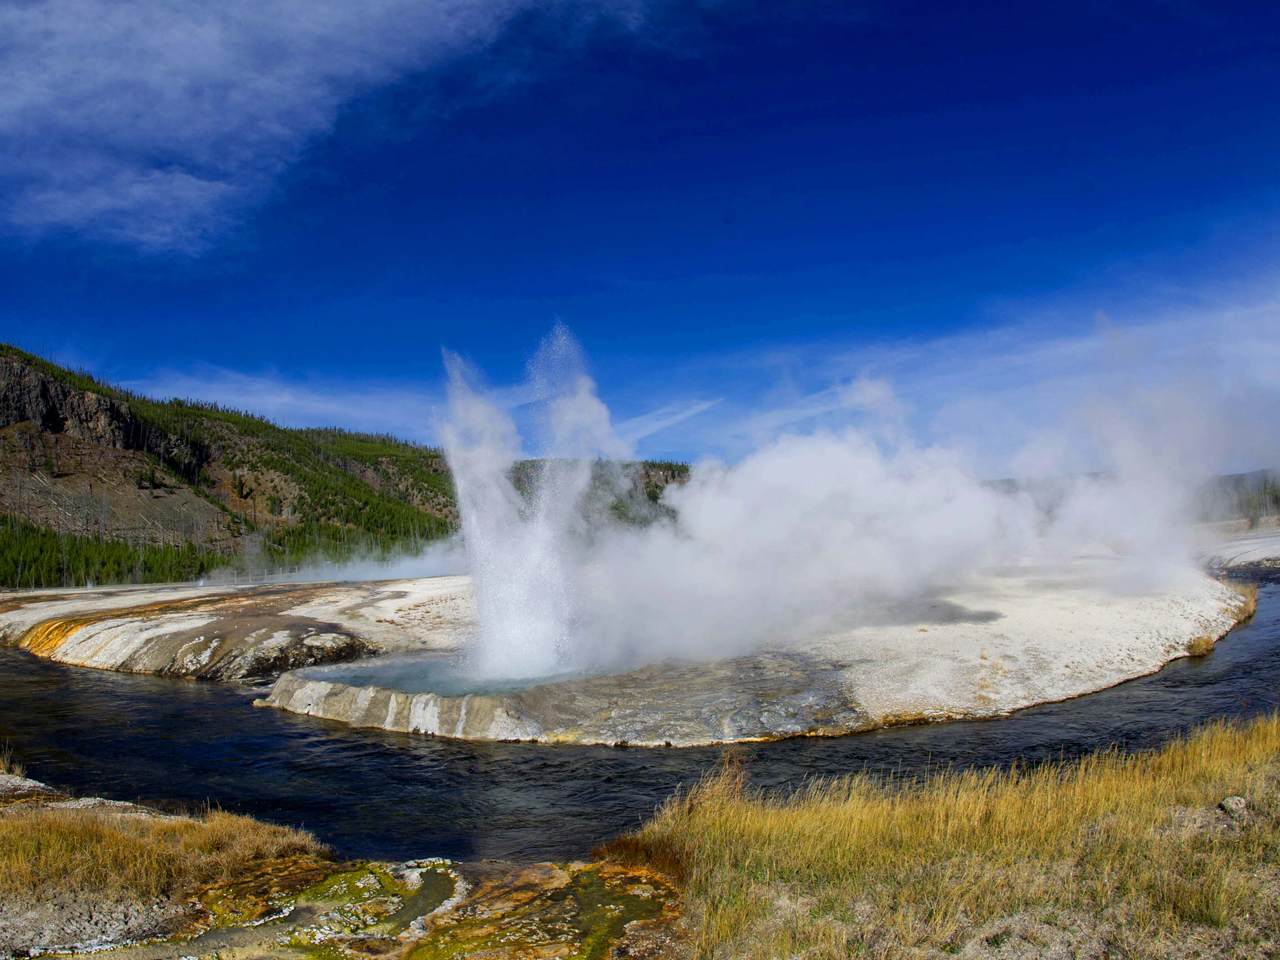 Yellowstone National Park debates improving its bandwidth - CBS News